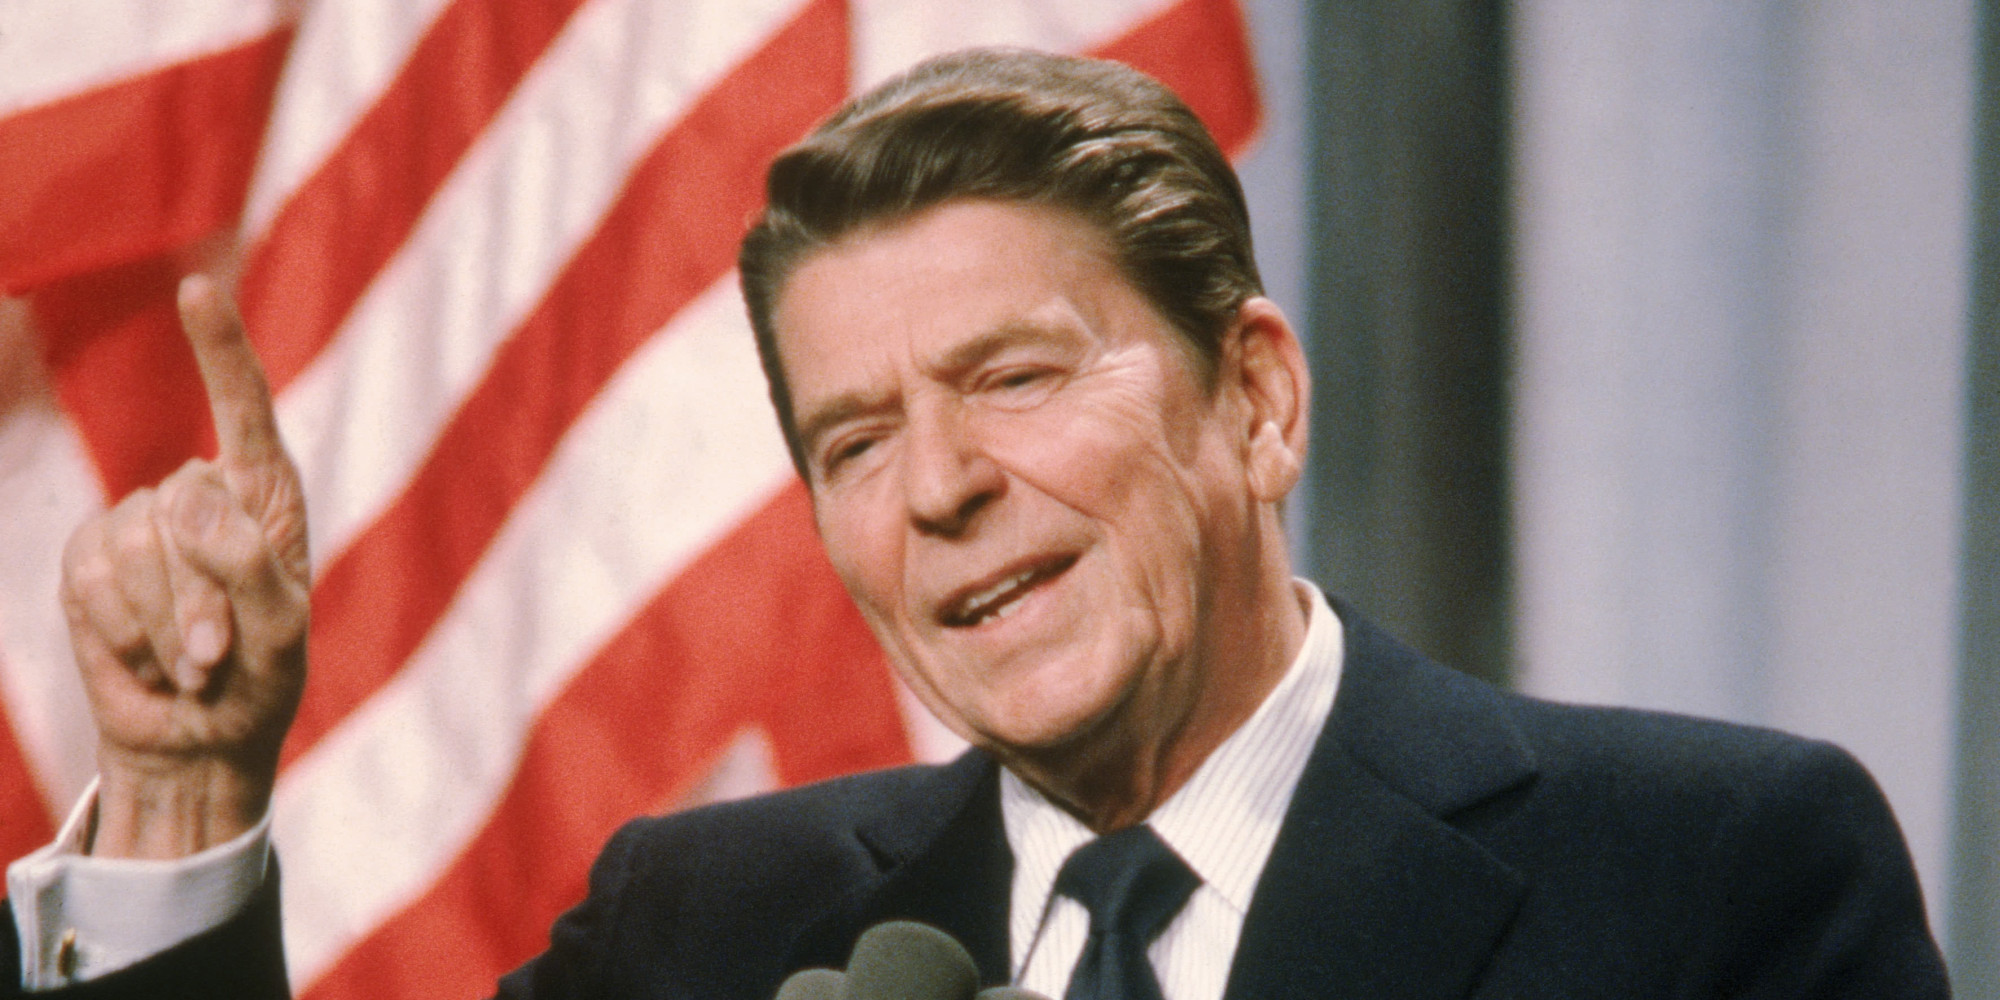 Romanticizing Reagan: Part I – Taxation and Spending